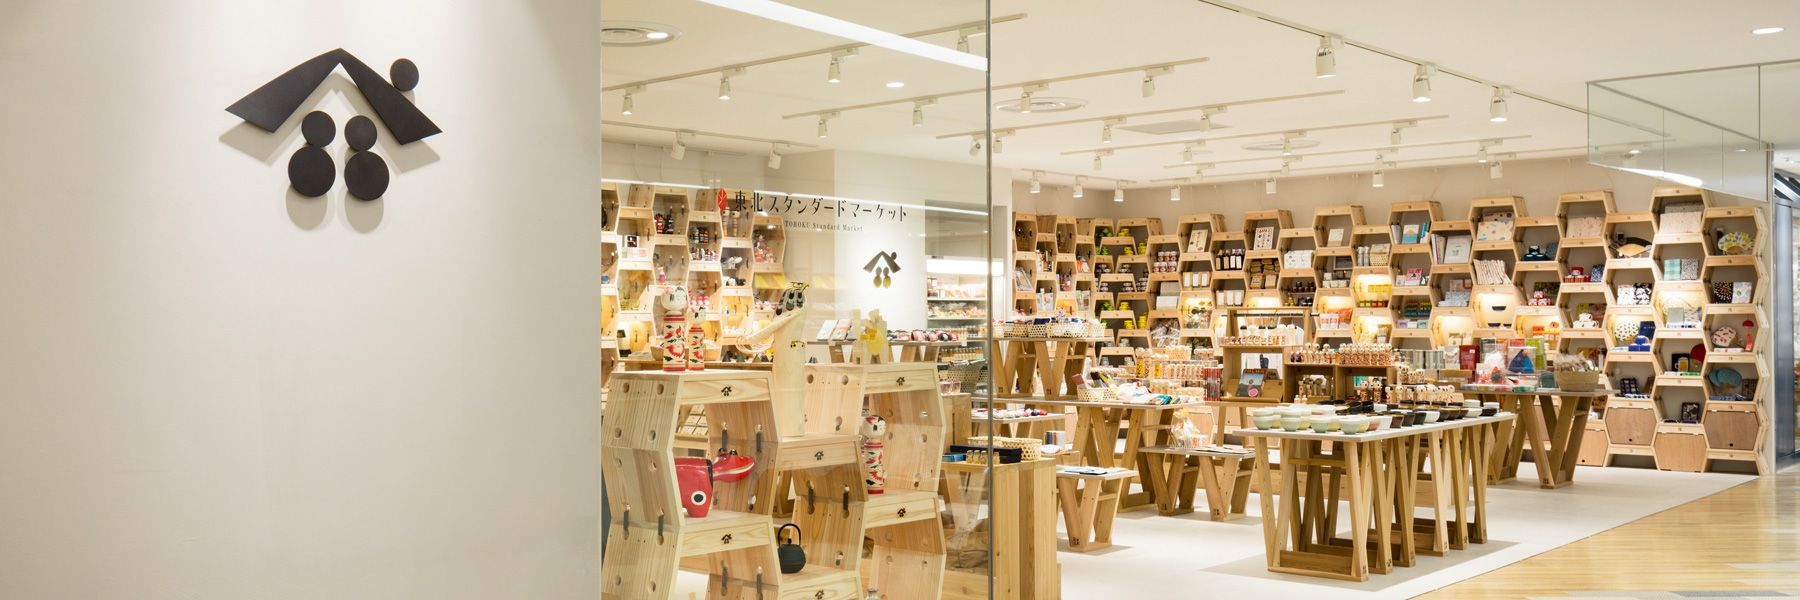 tohoku standard store in japan experiments with wooden units